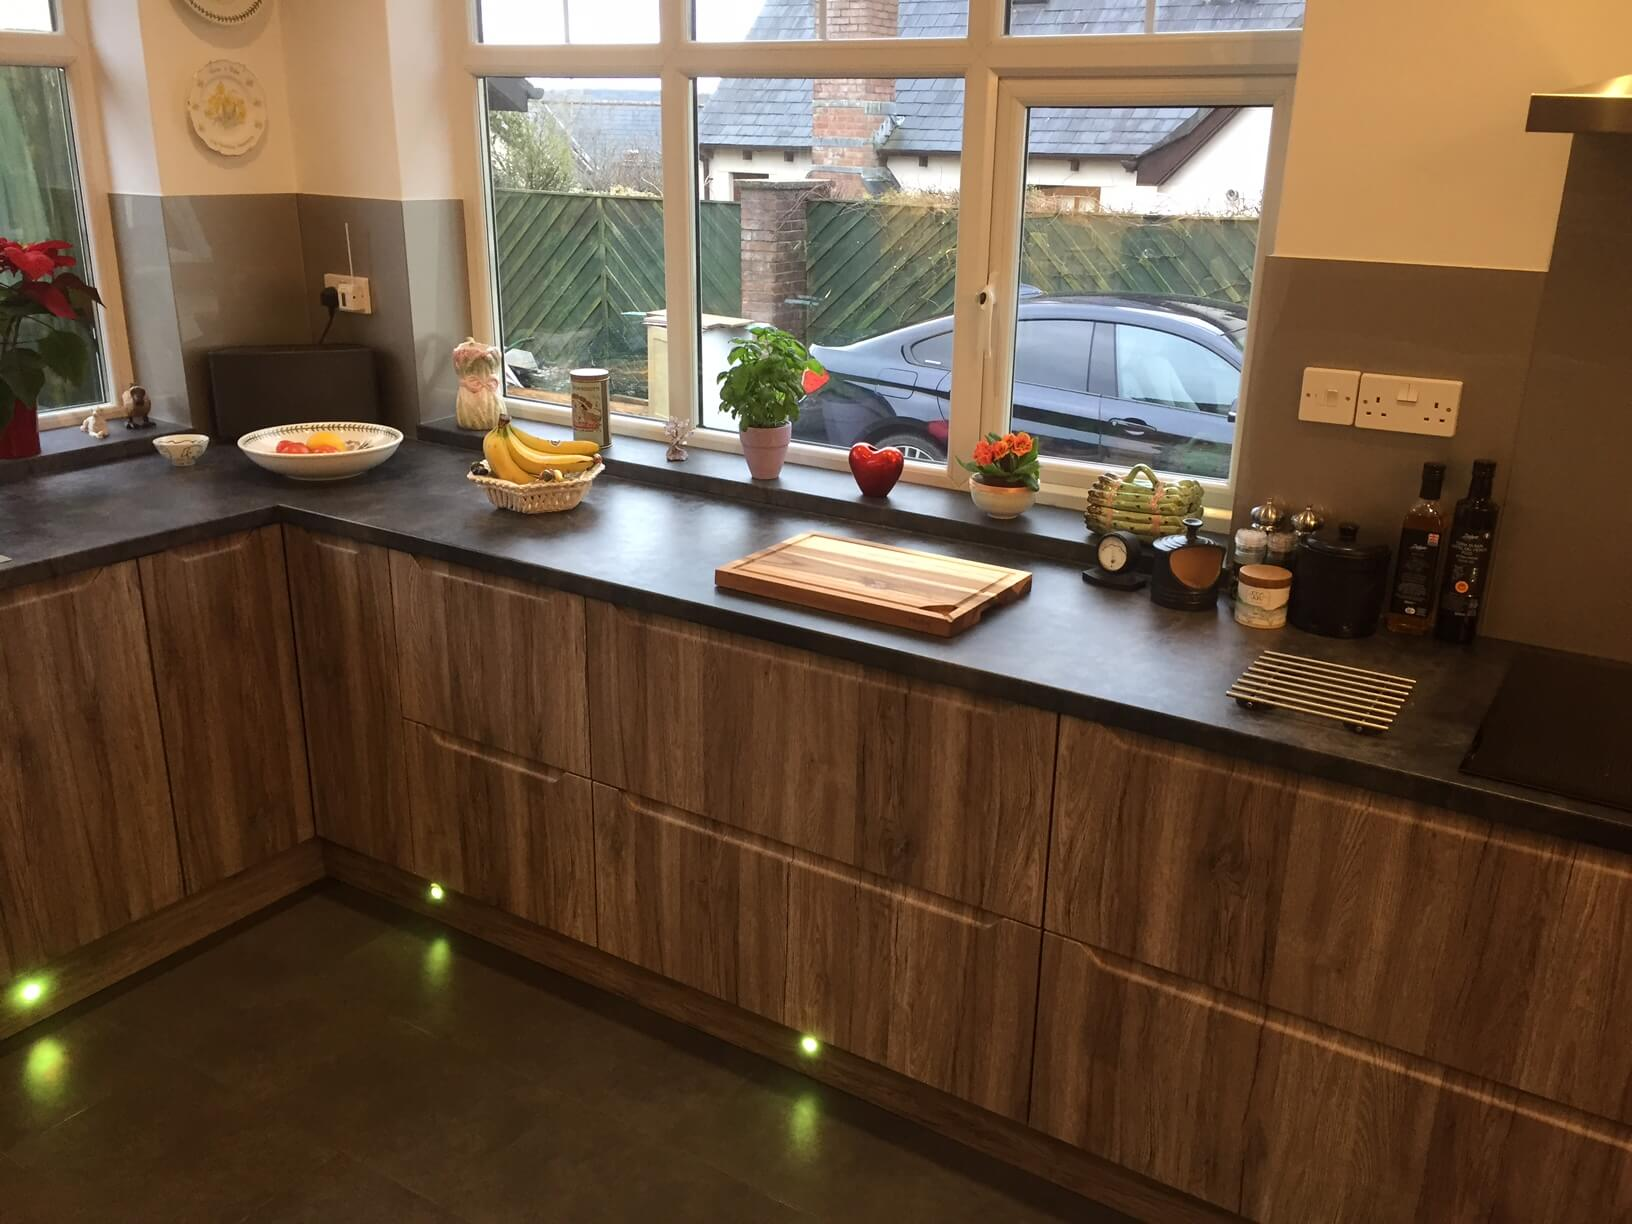 Finished Kitchen with acrylic splash Back and Llghts fitted3